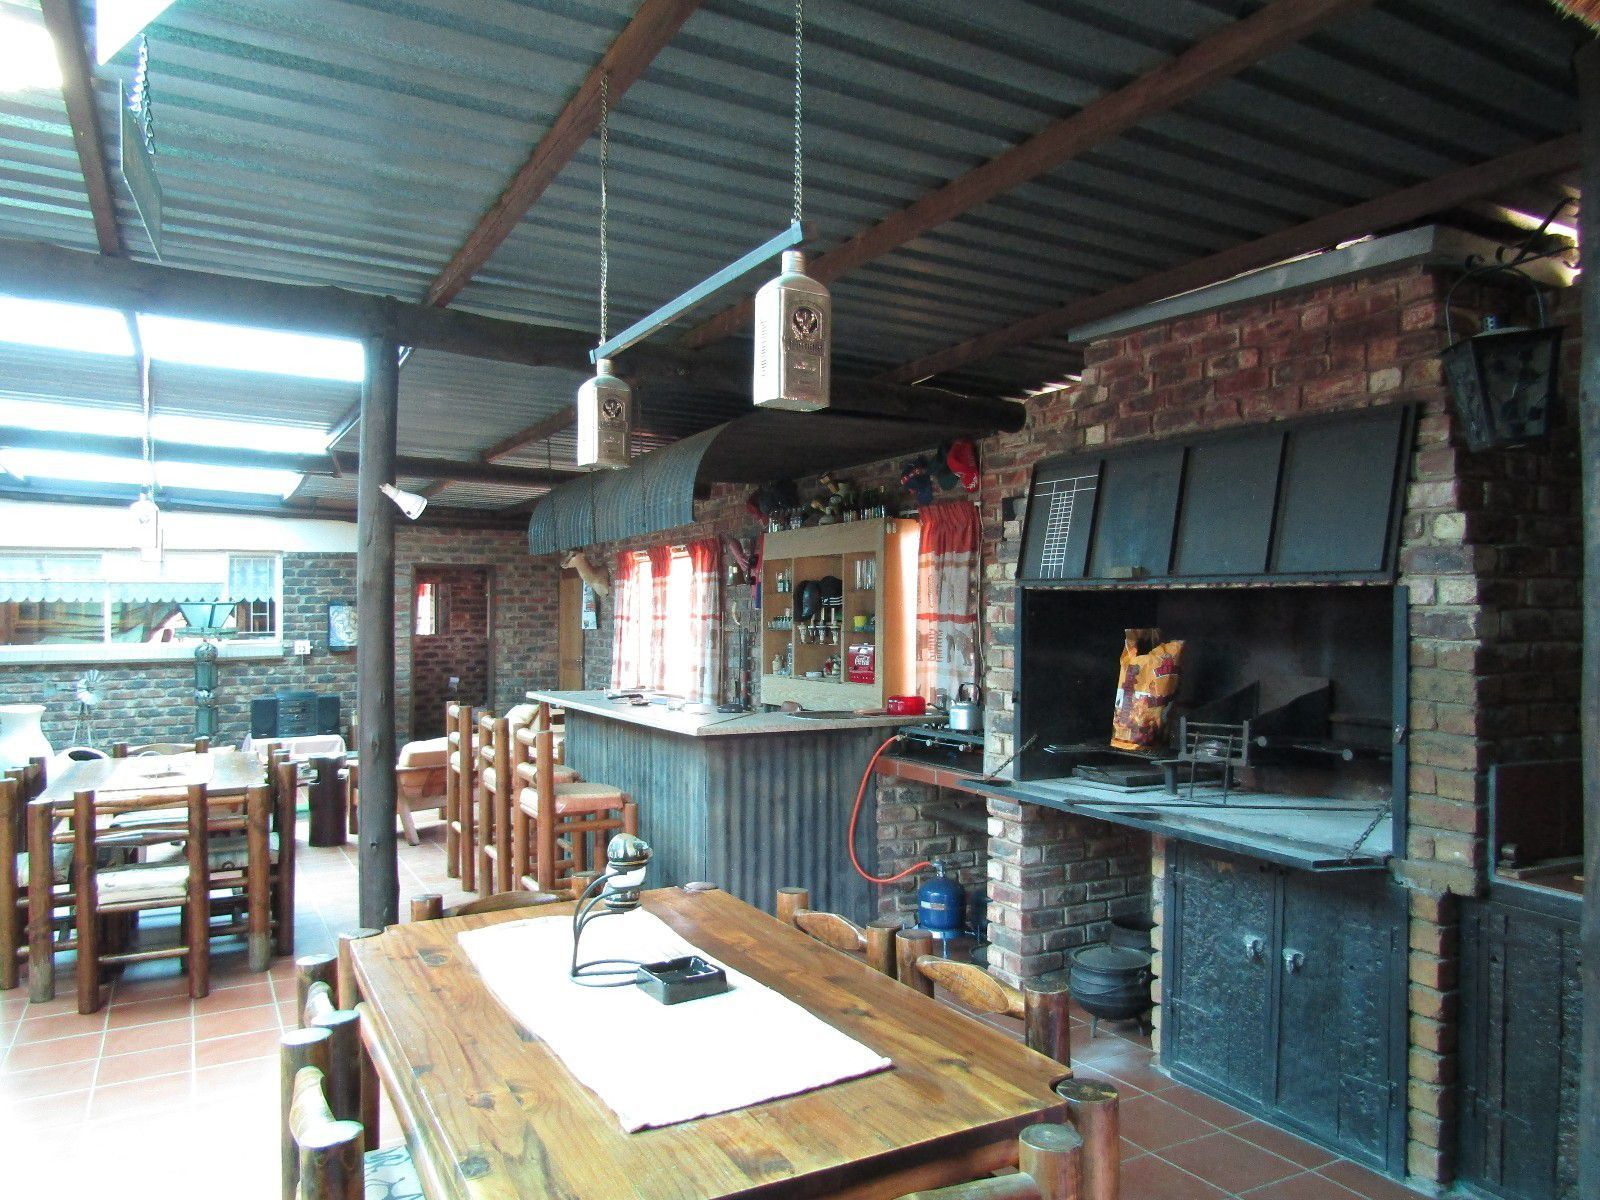 Potchefstroom Central property for sale. Ref No: 13444543. Picture no 6